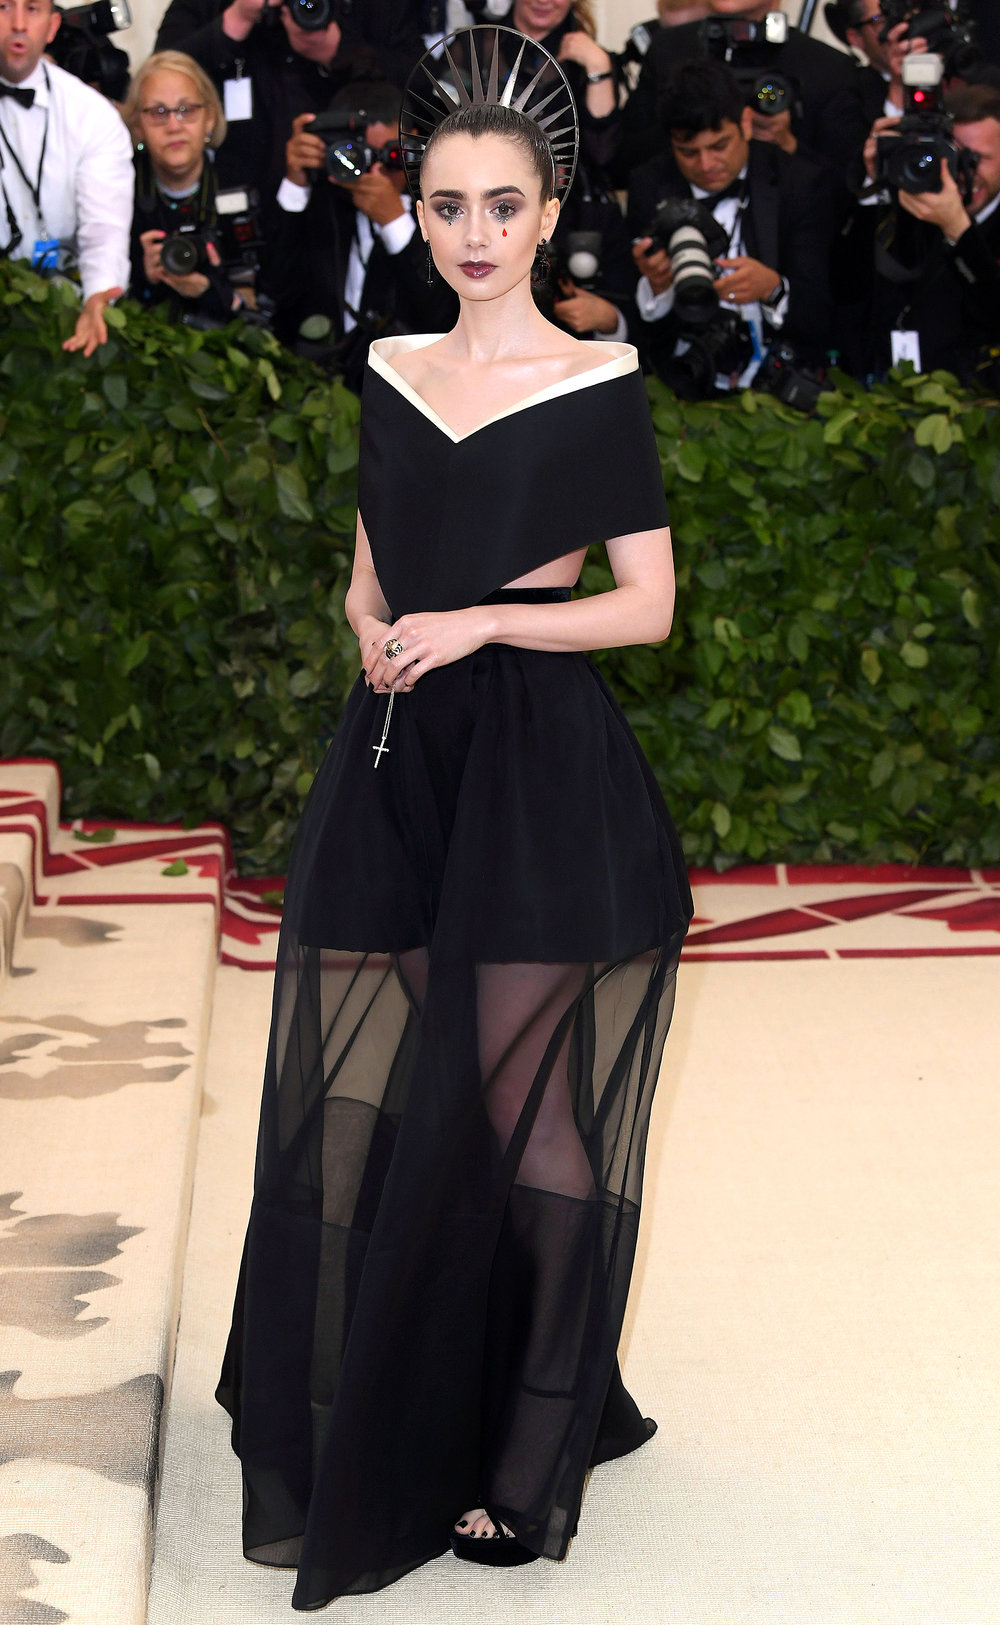 25. LILY COLLINS